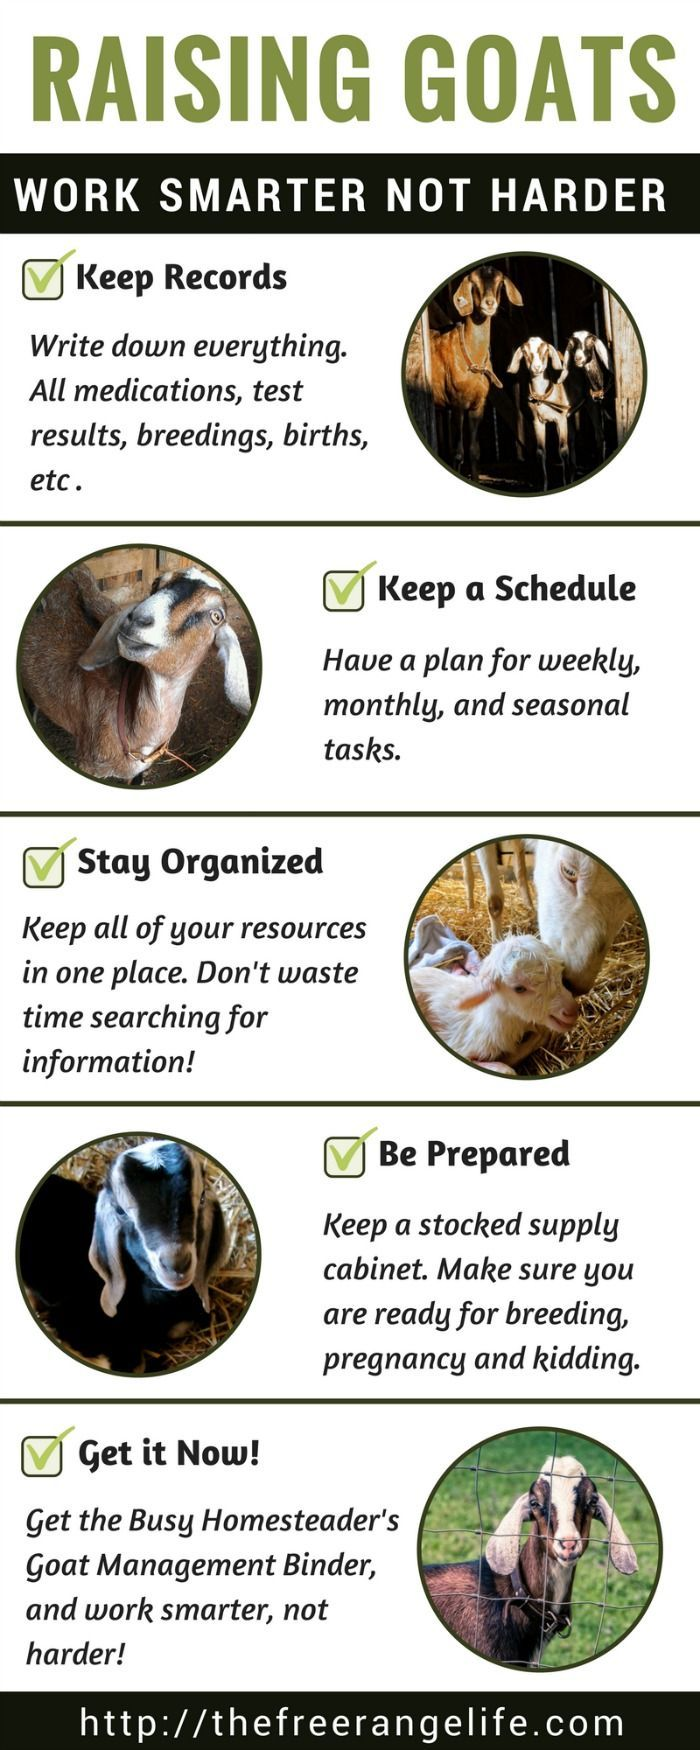 Raise goats smarter not harder! The Busy Homesteader's Goat Management Binder save you time and frustration keep your herd happy and healthy. Click for more information!